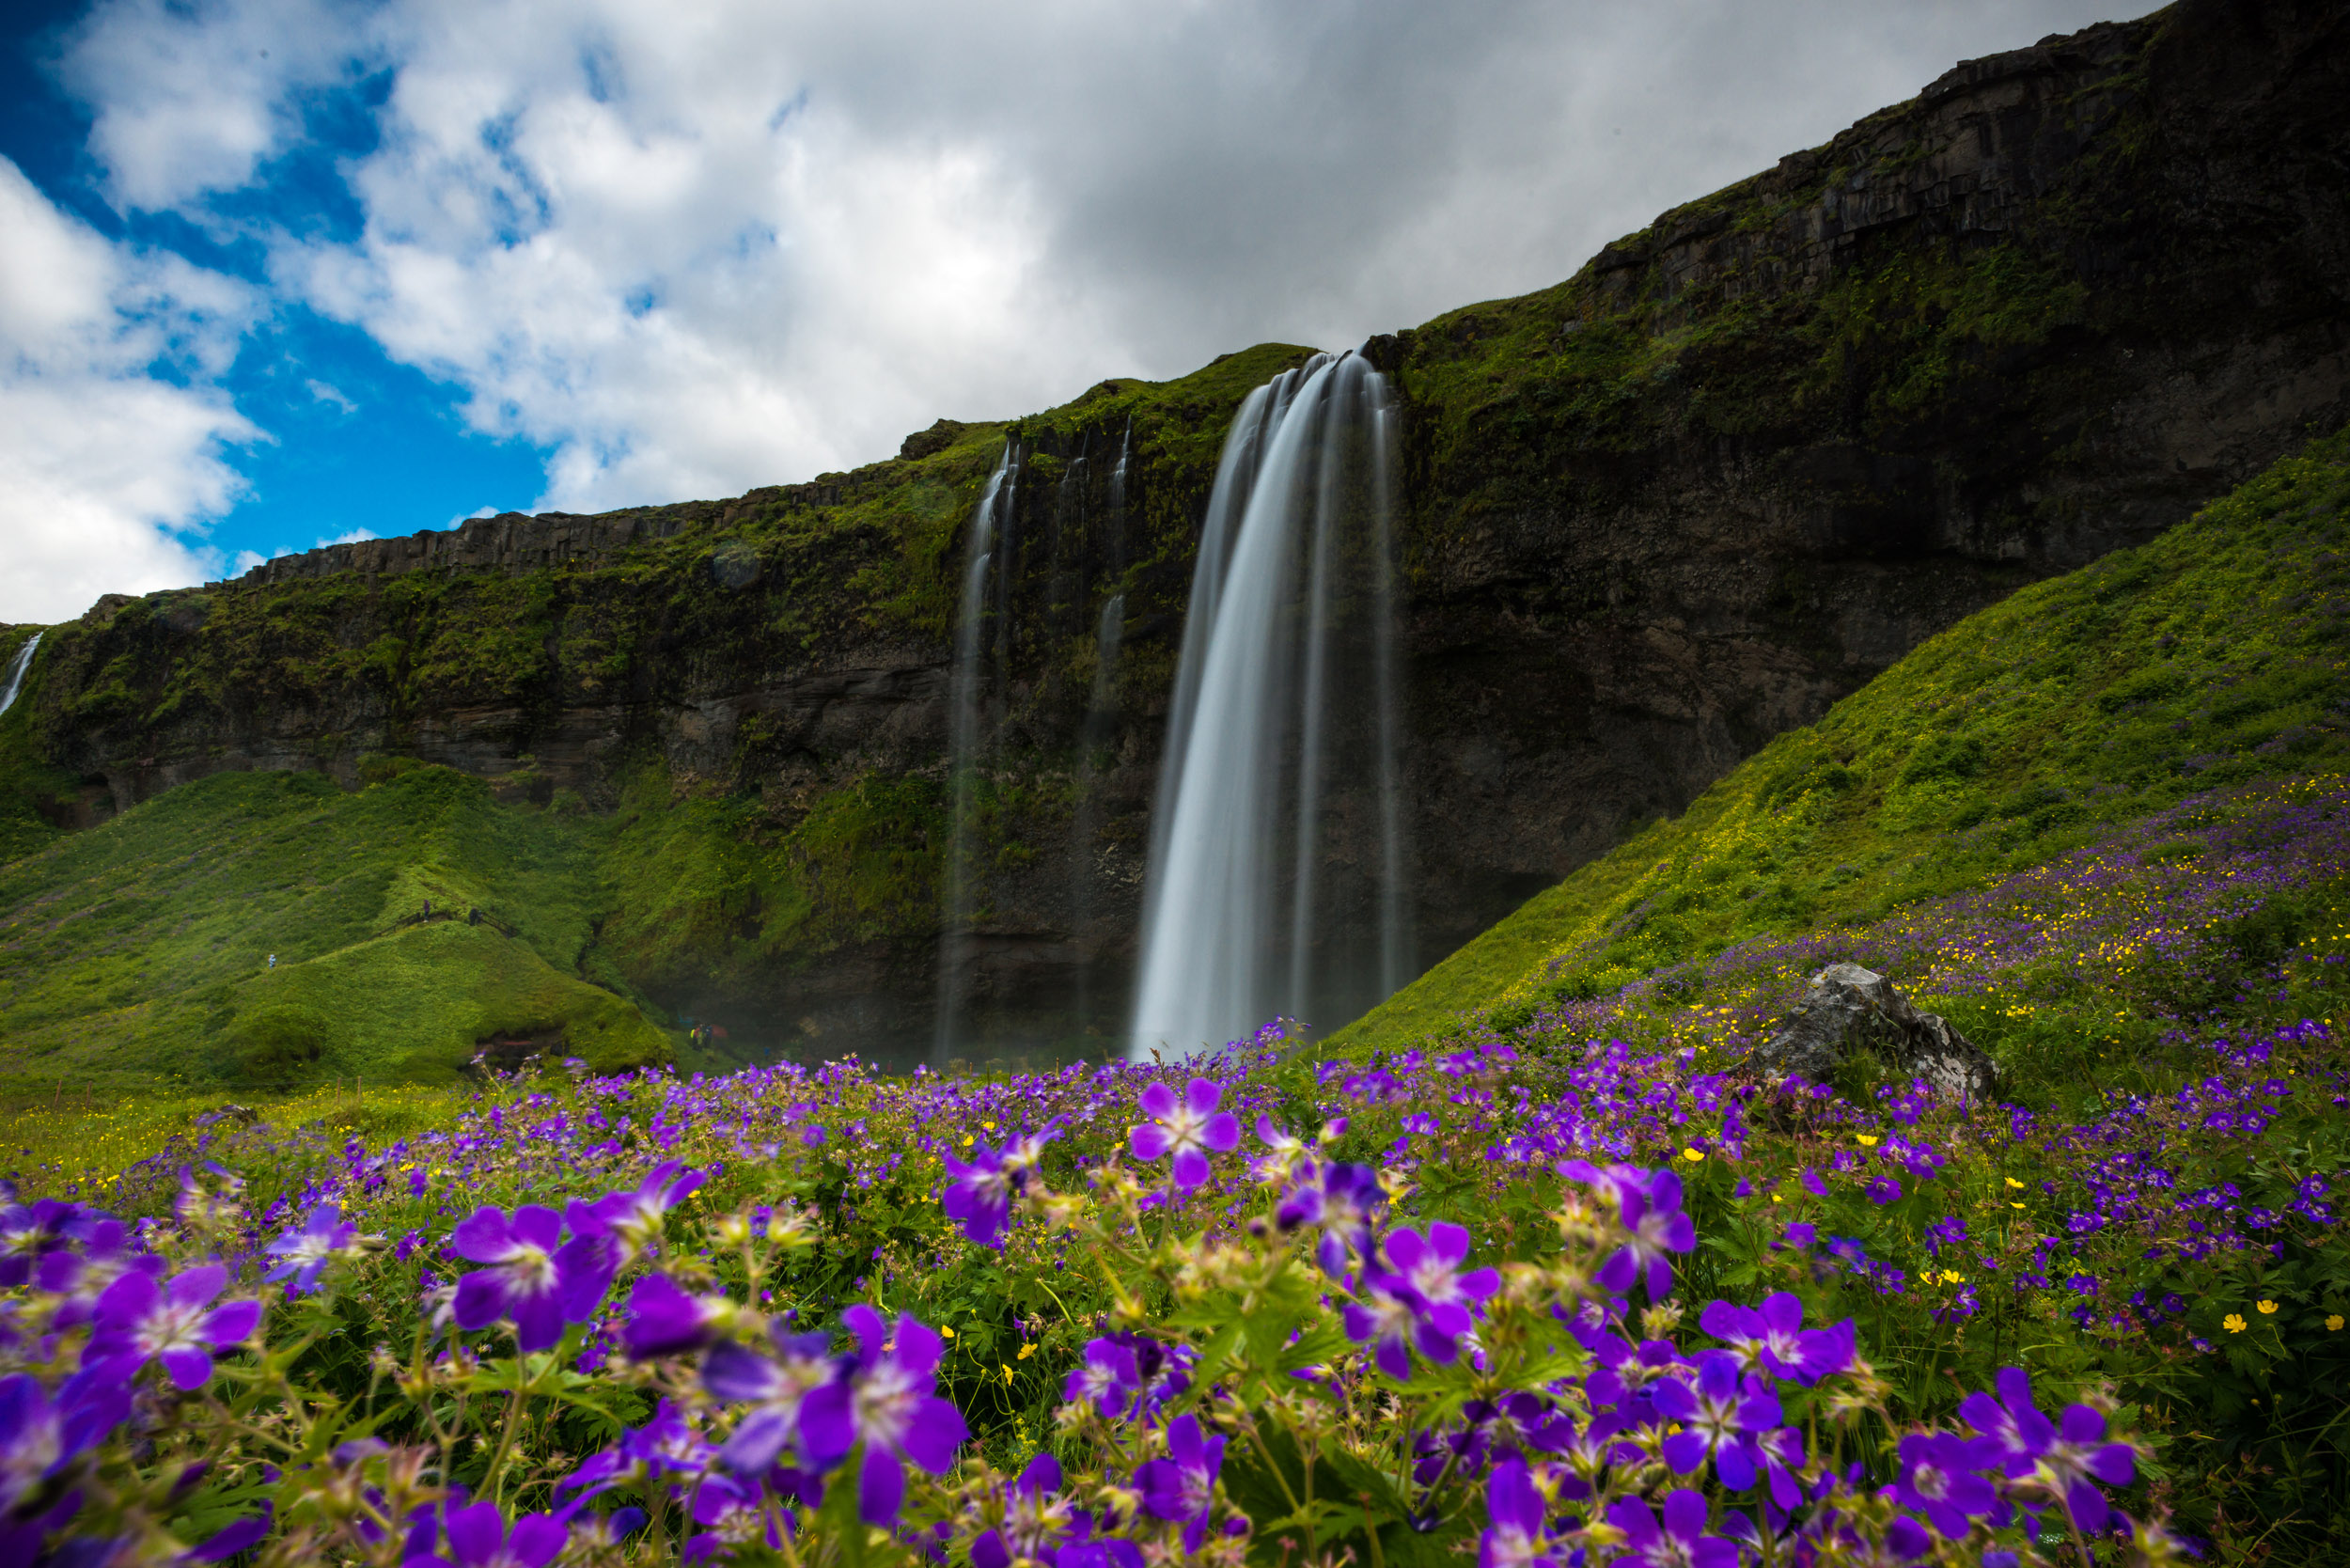 Seljalandsfoss - This was our first stop outside of Reykjavík, and definitely a precursor to the stunning beauty of Iceland. I couldn't recommend a better place on this earth to witness a wide array of stunning landscapes.